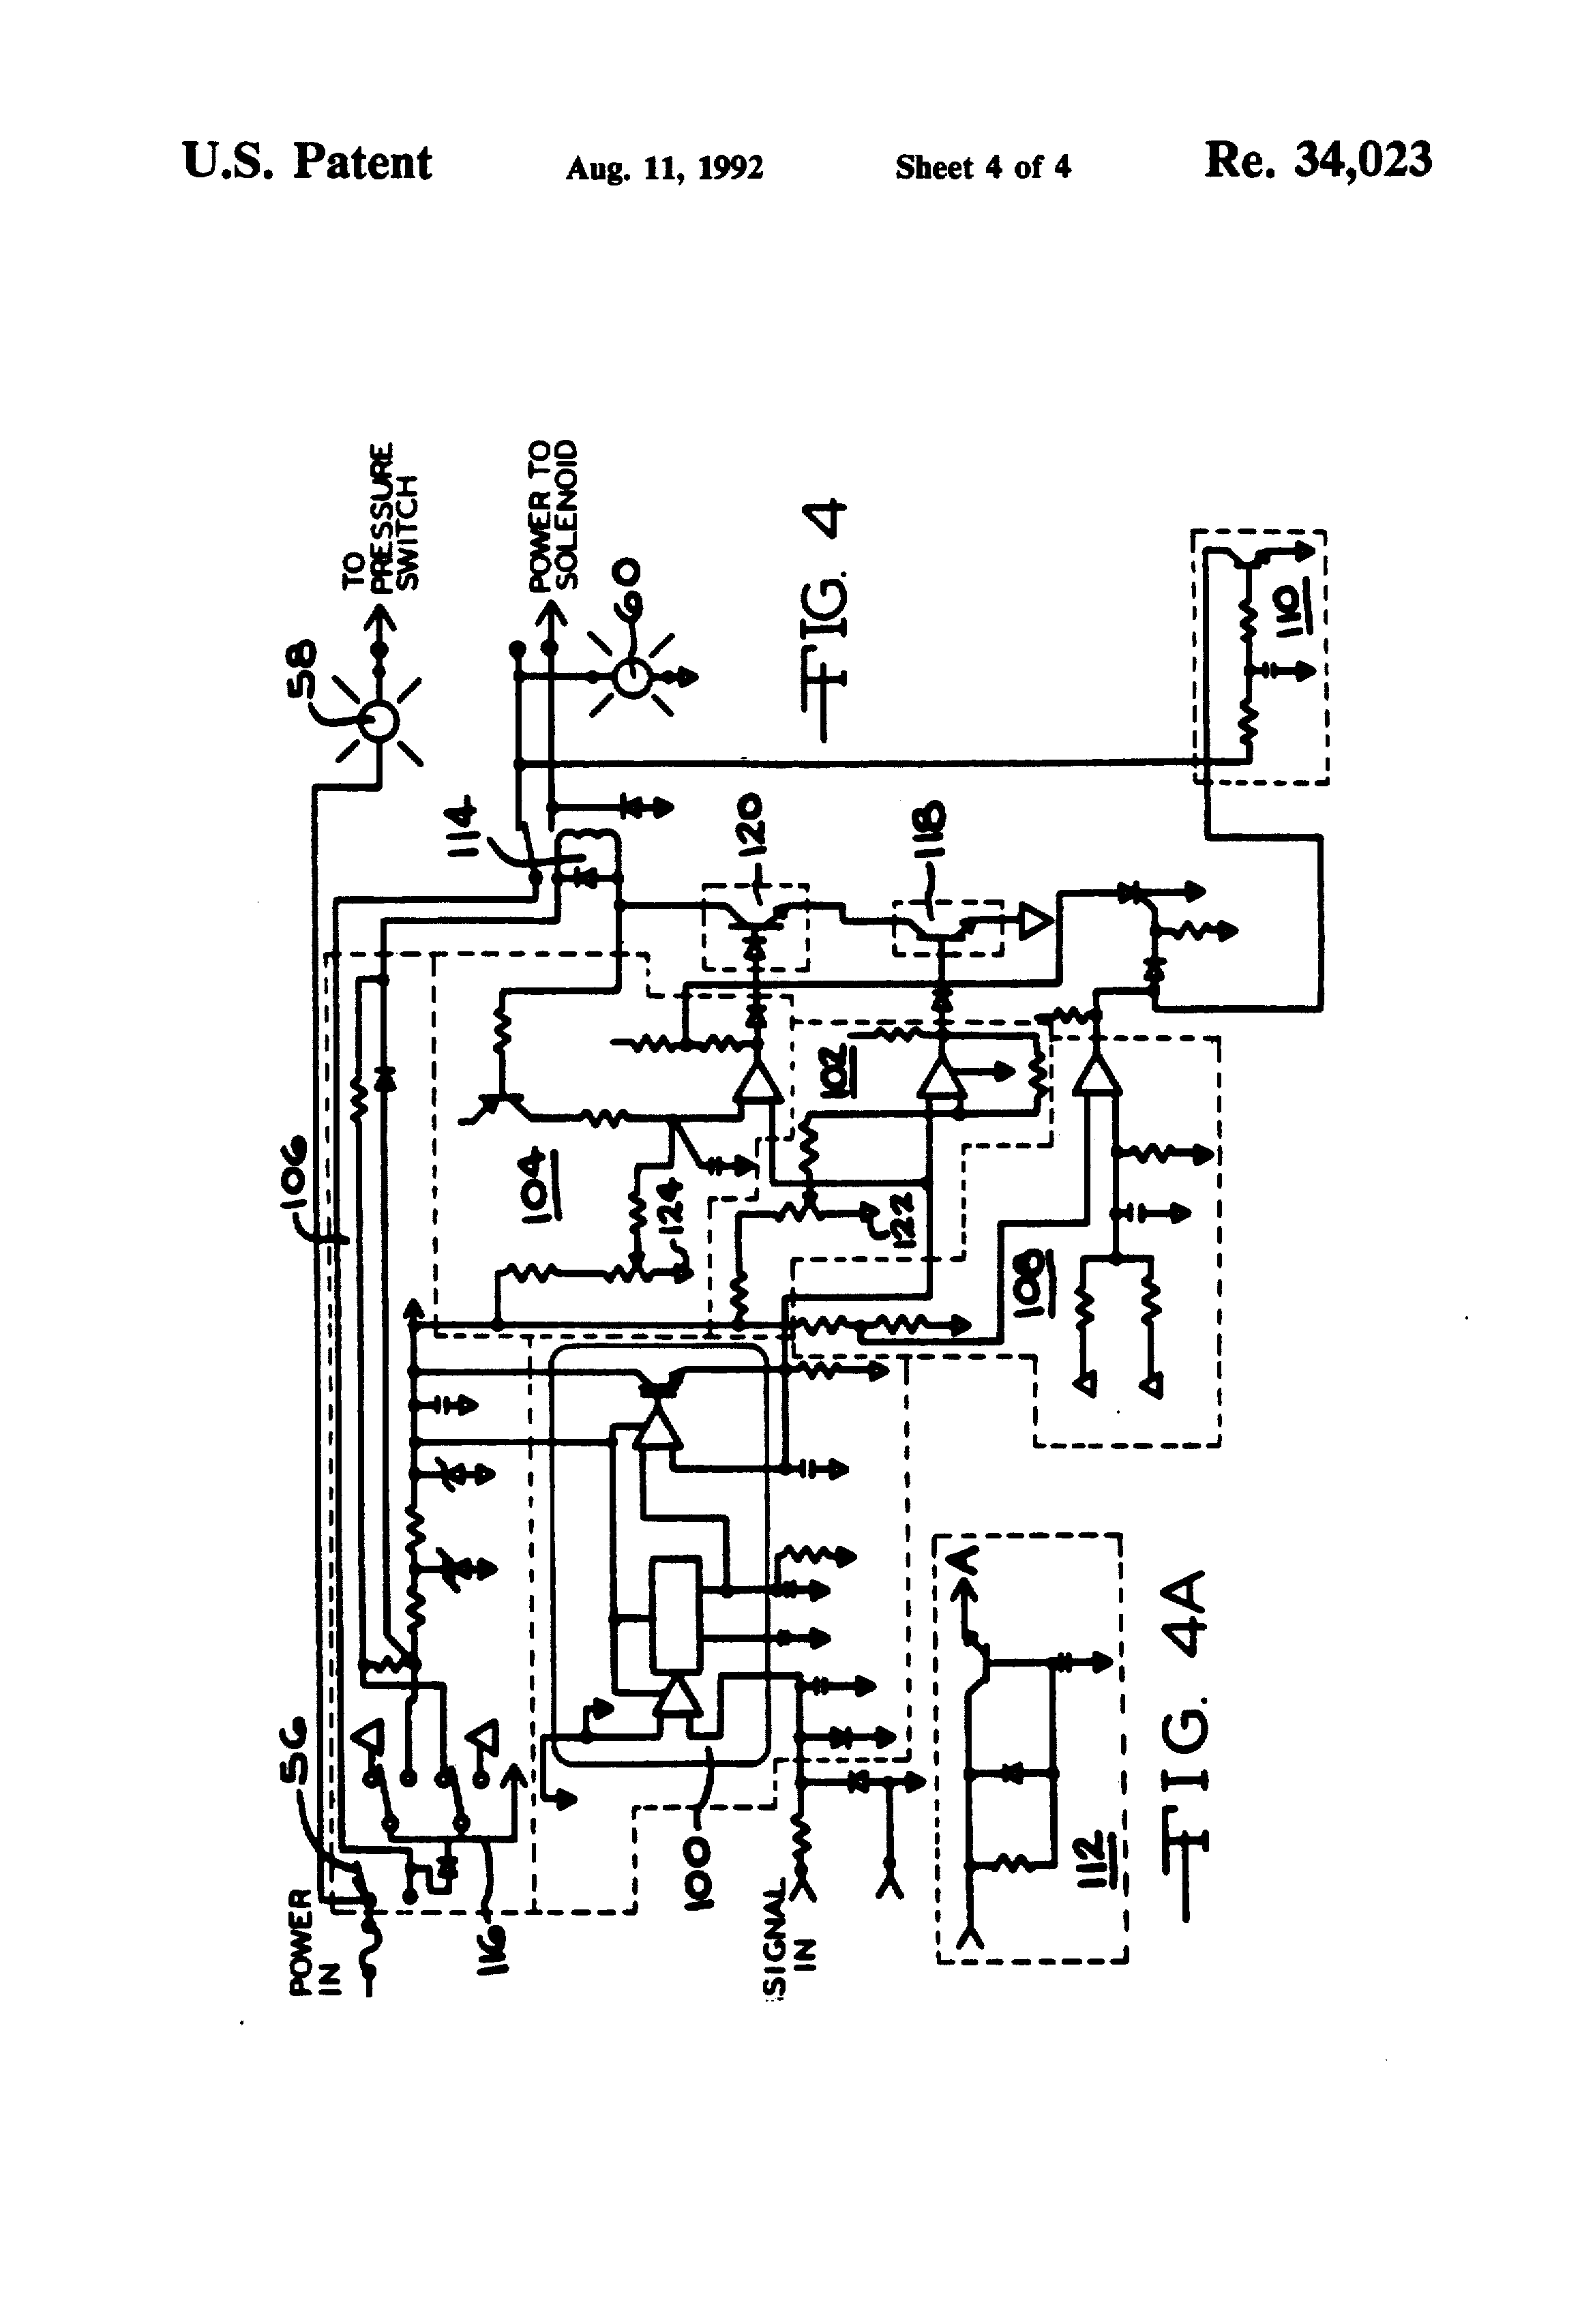 USRE34023 5 muncie pto wiring diagram muncie pto valve \u2022 wiring diagrams j muncie pto wiring diagram at crackthecode.co